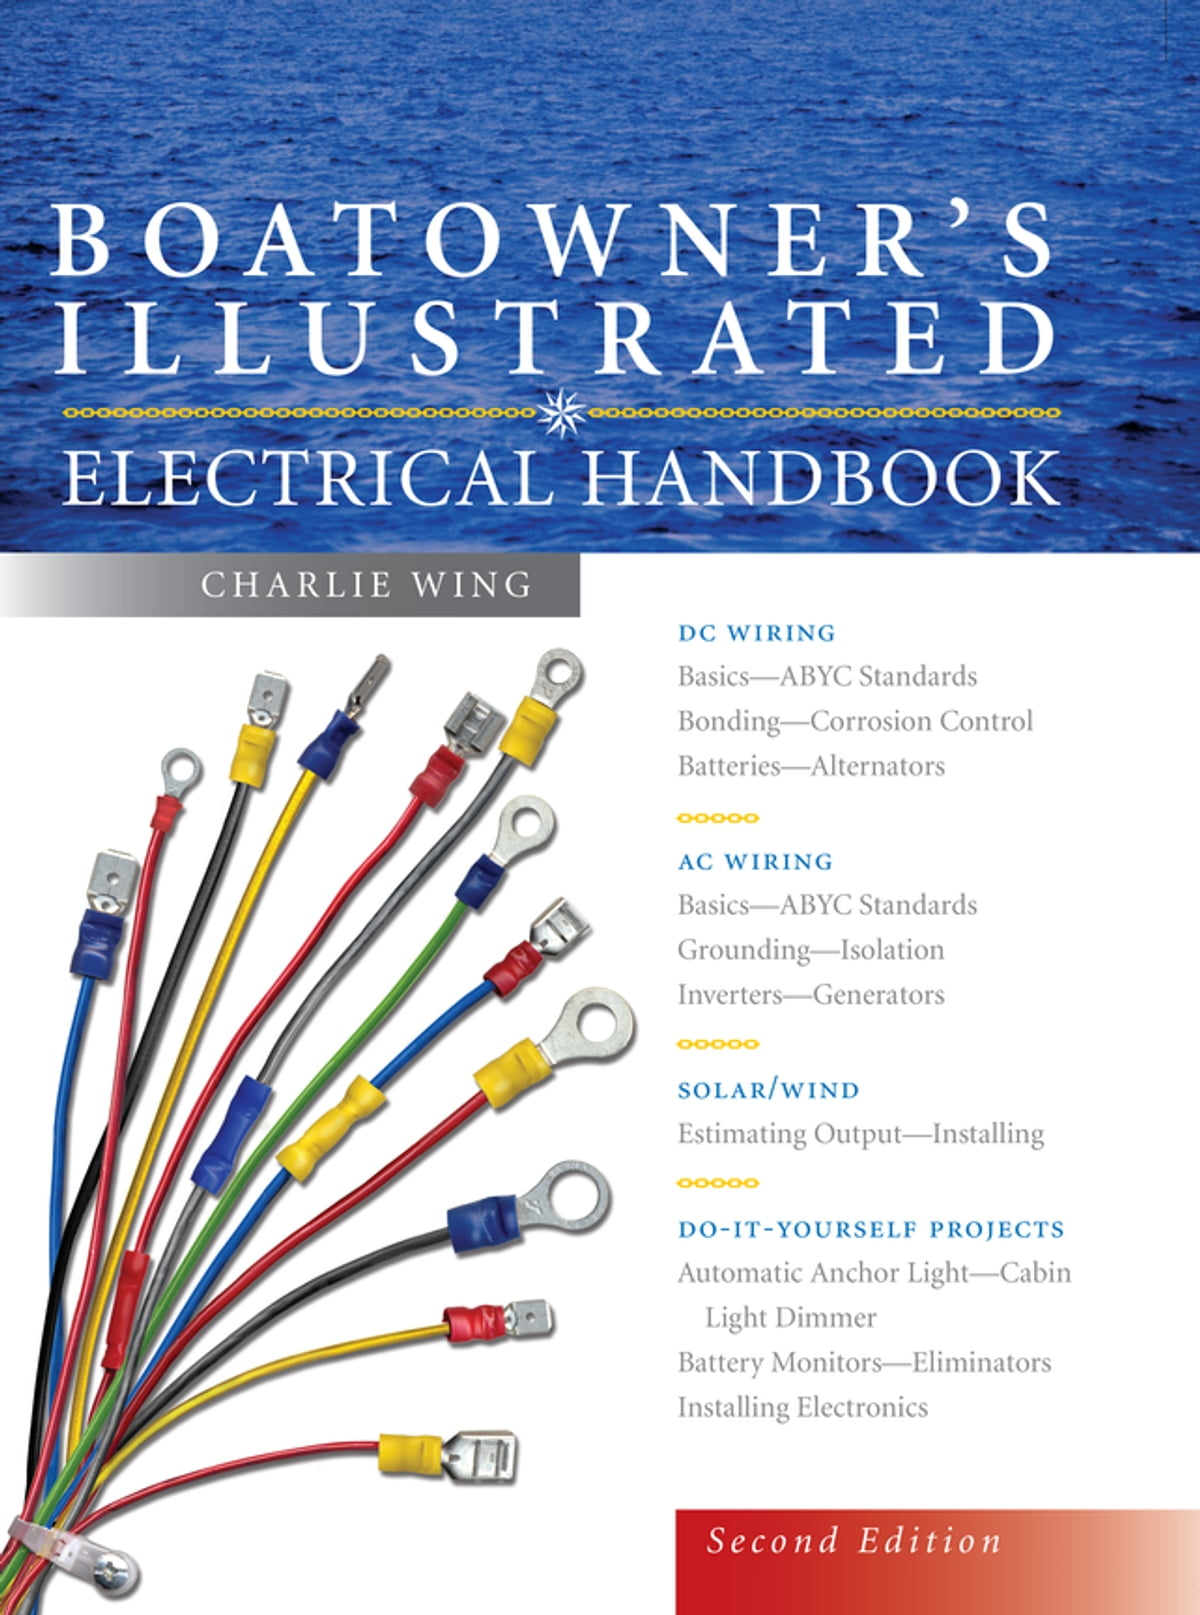 Boatowner's Illustrated Electrical Handbook ebook by Charlie Wing - on